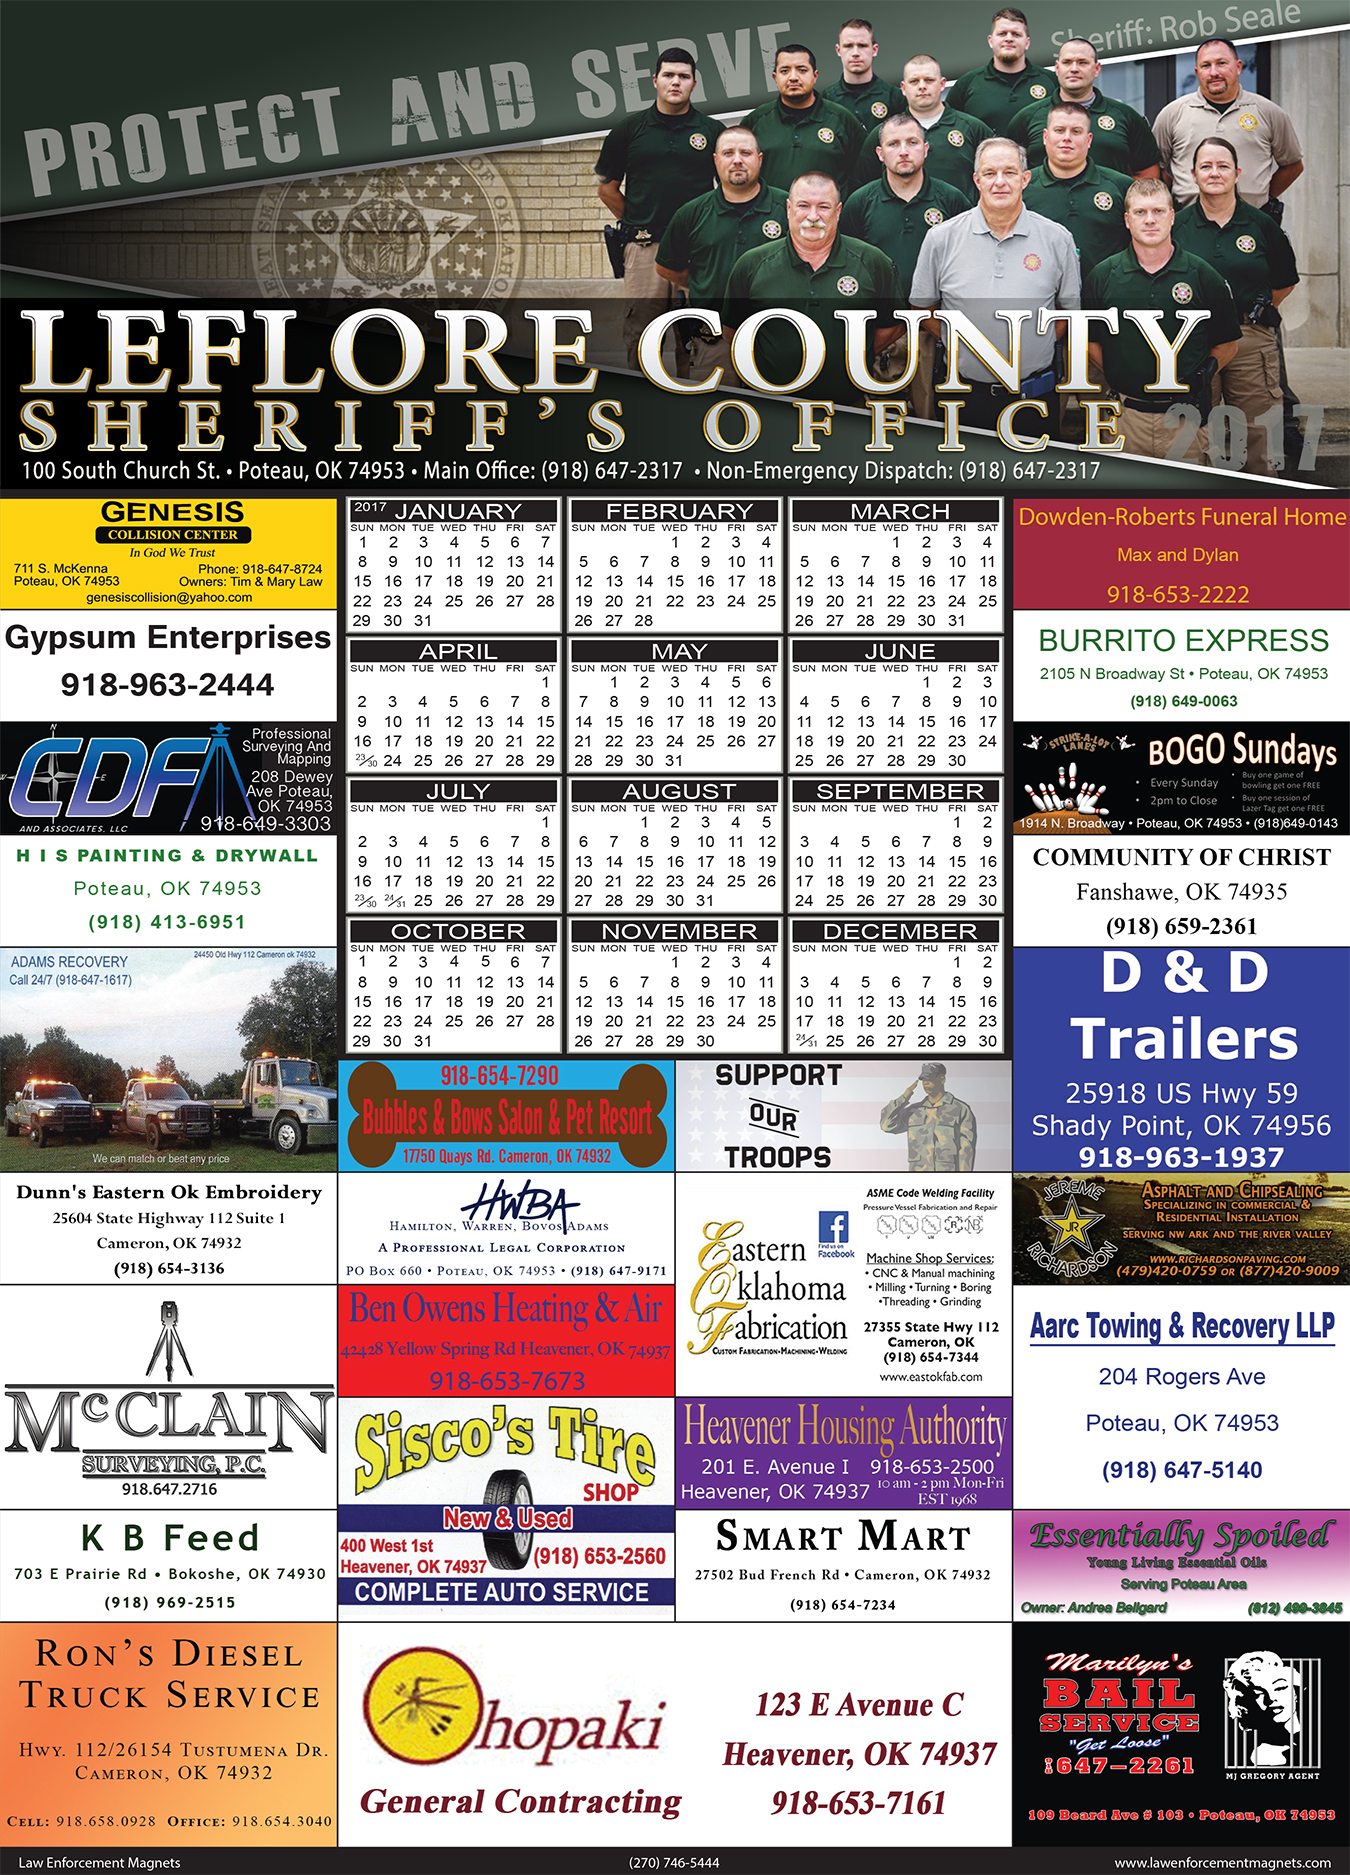 Leflore Sheriff's Office